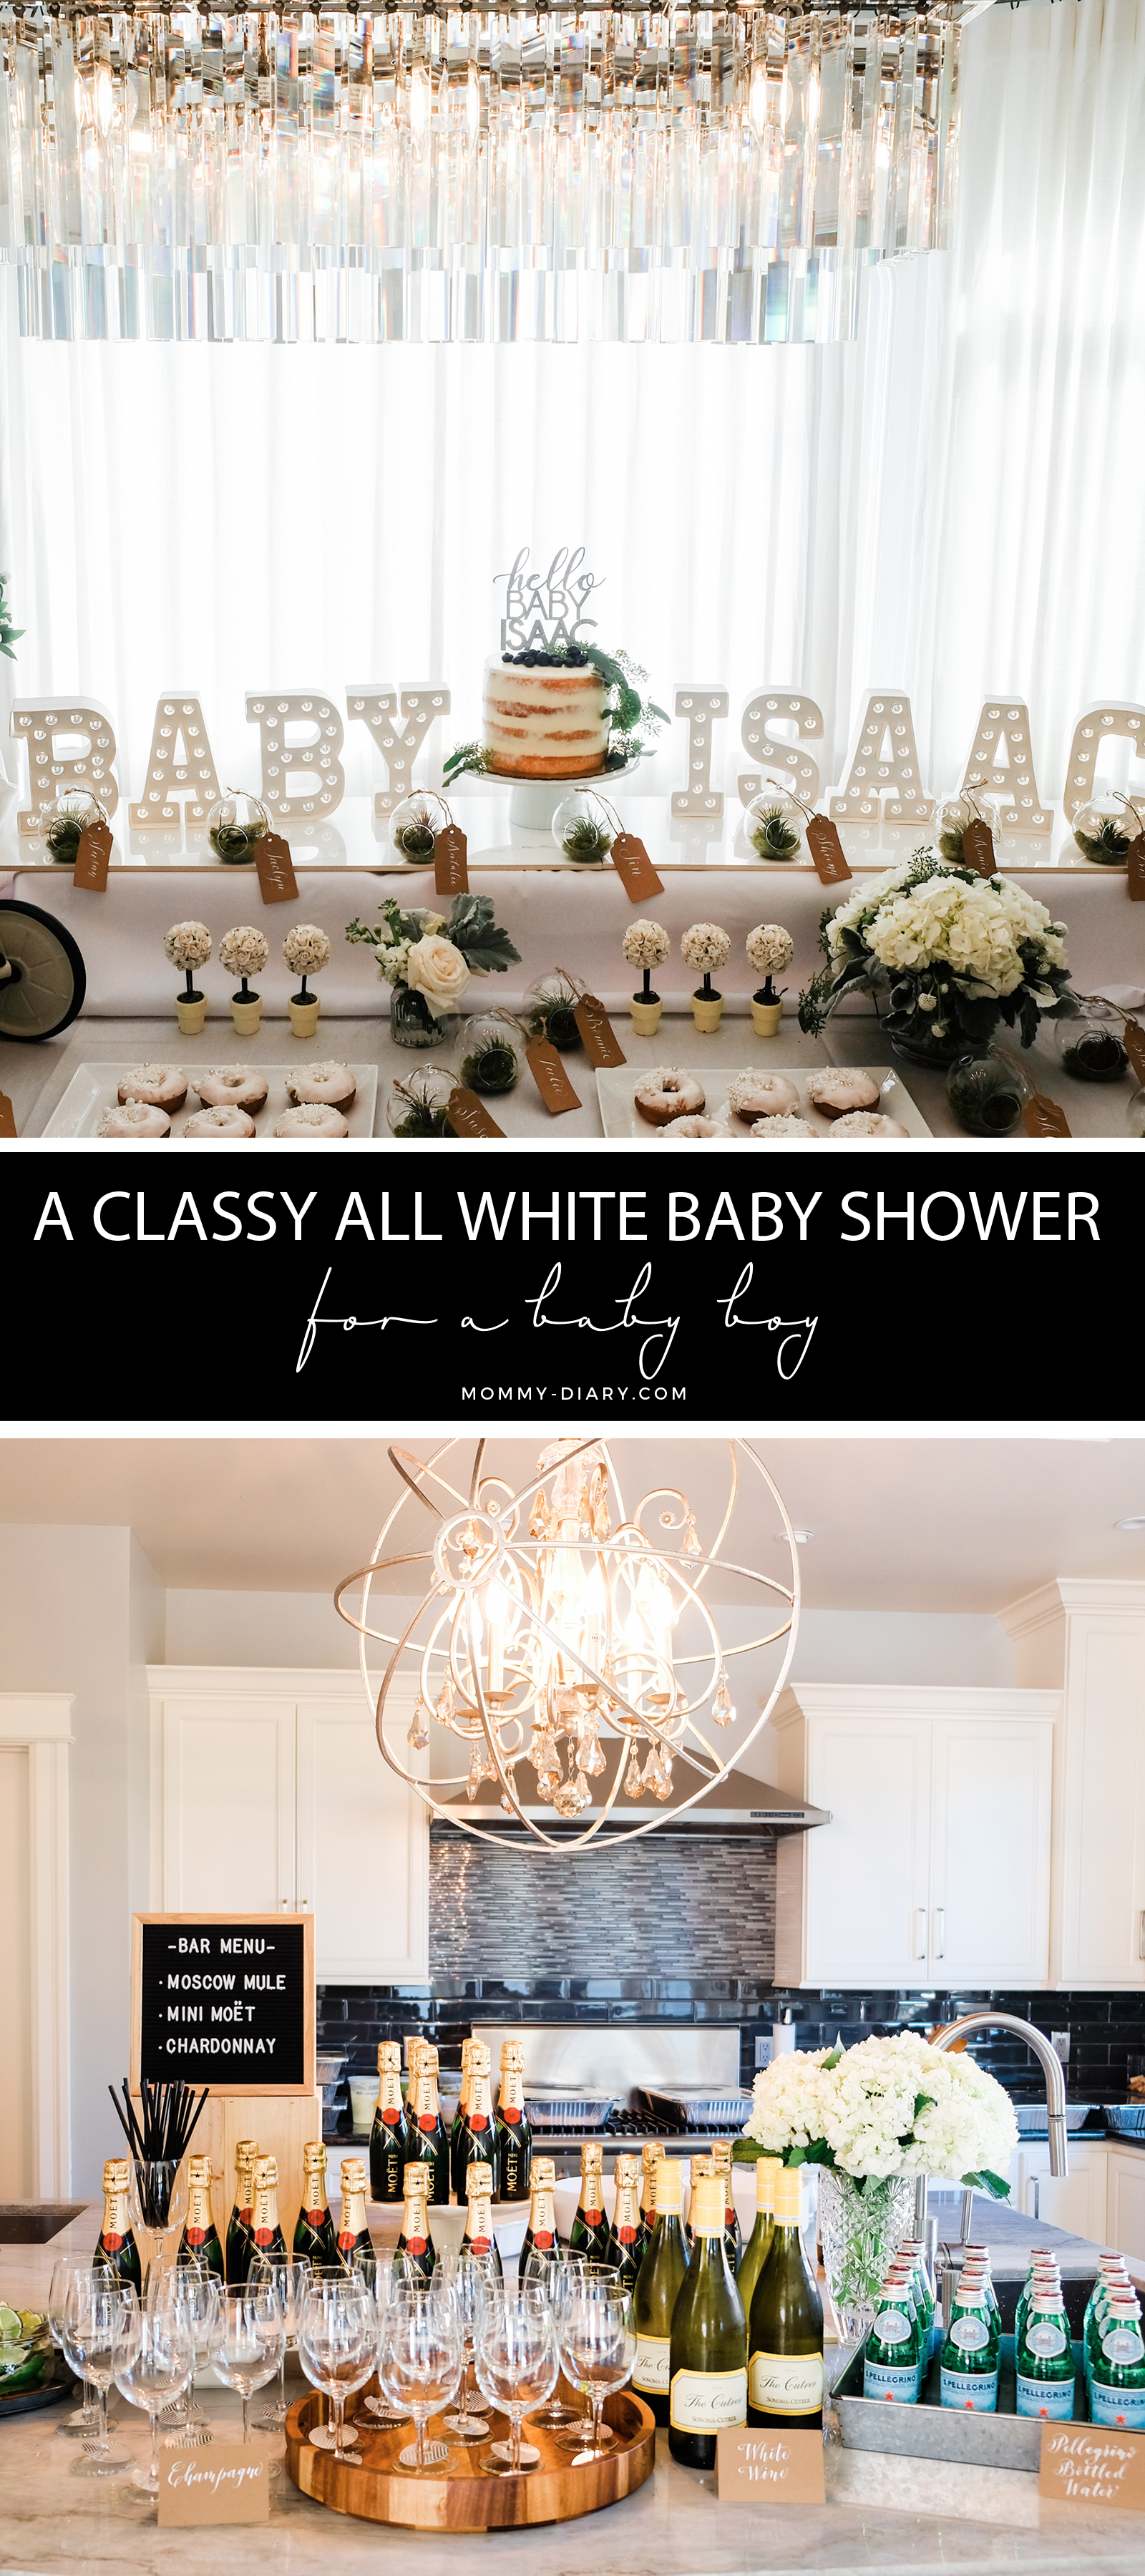 all-white-gender-neutral-baby-shower- for boy or girl